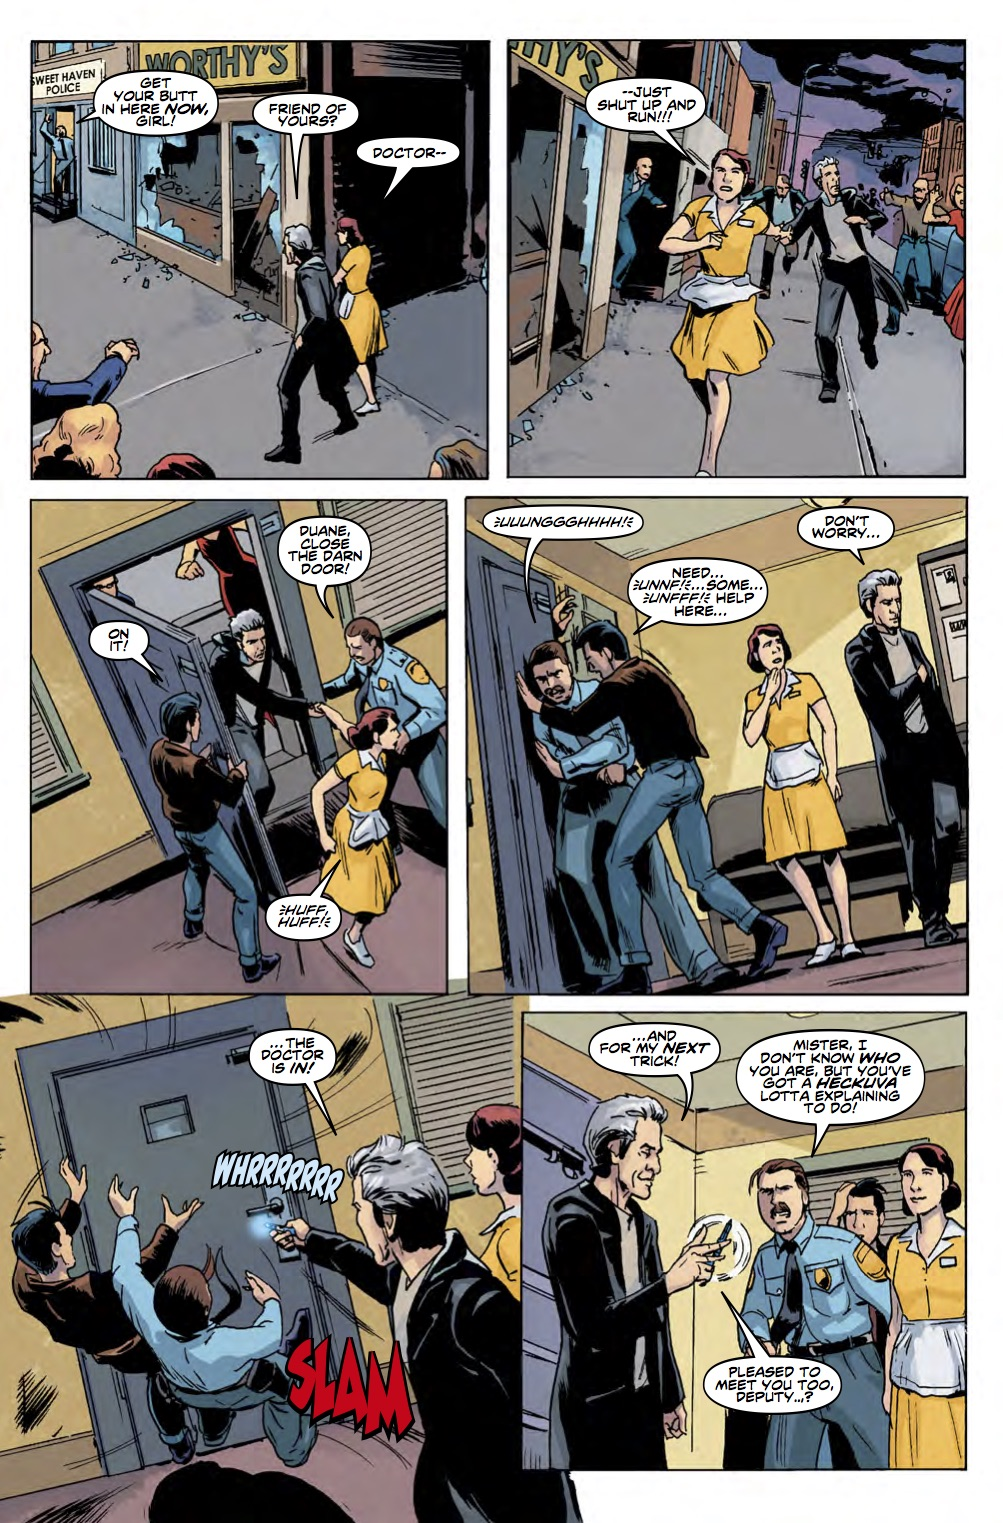 TWELFTH DOCTOR YEAR 3 #2 Page 4 (Credit: Titan)